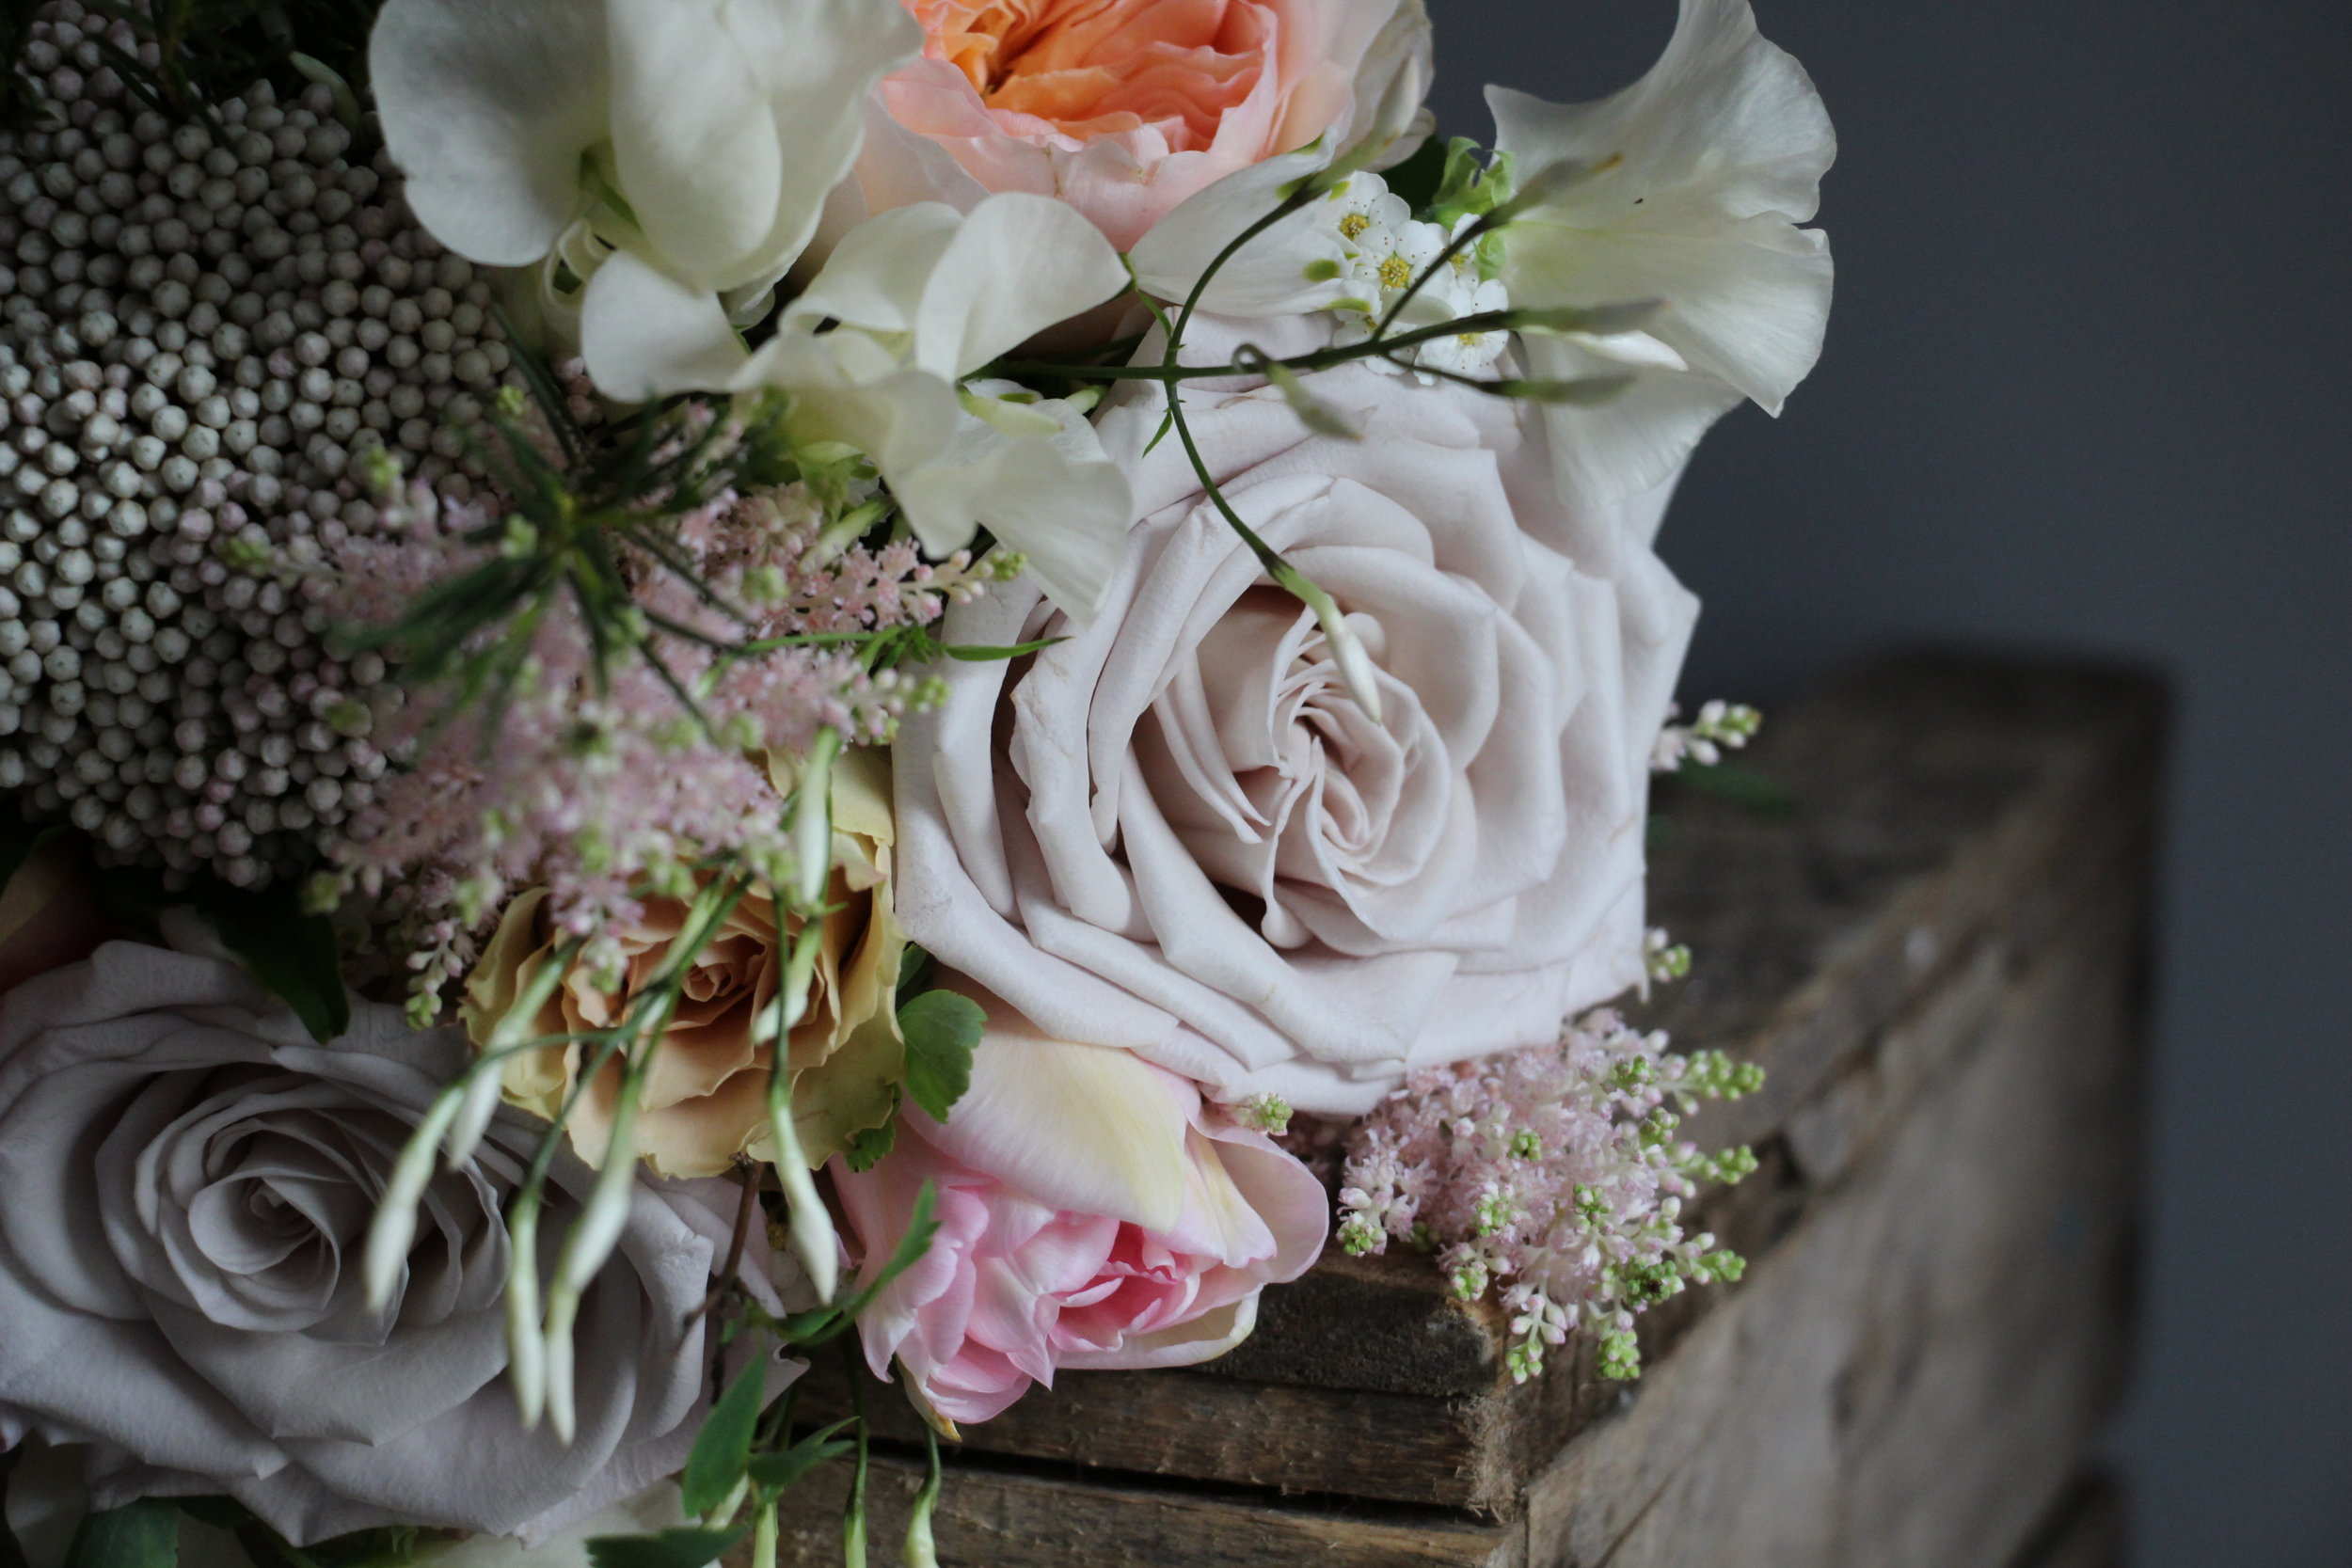 Mentha Rose stealing the show in this particular bridesmaids bouquet.